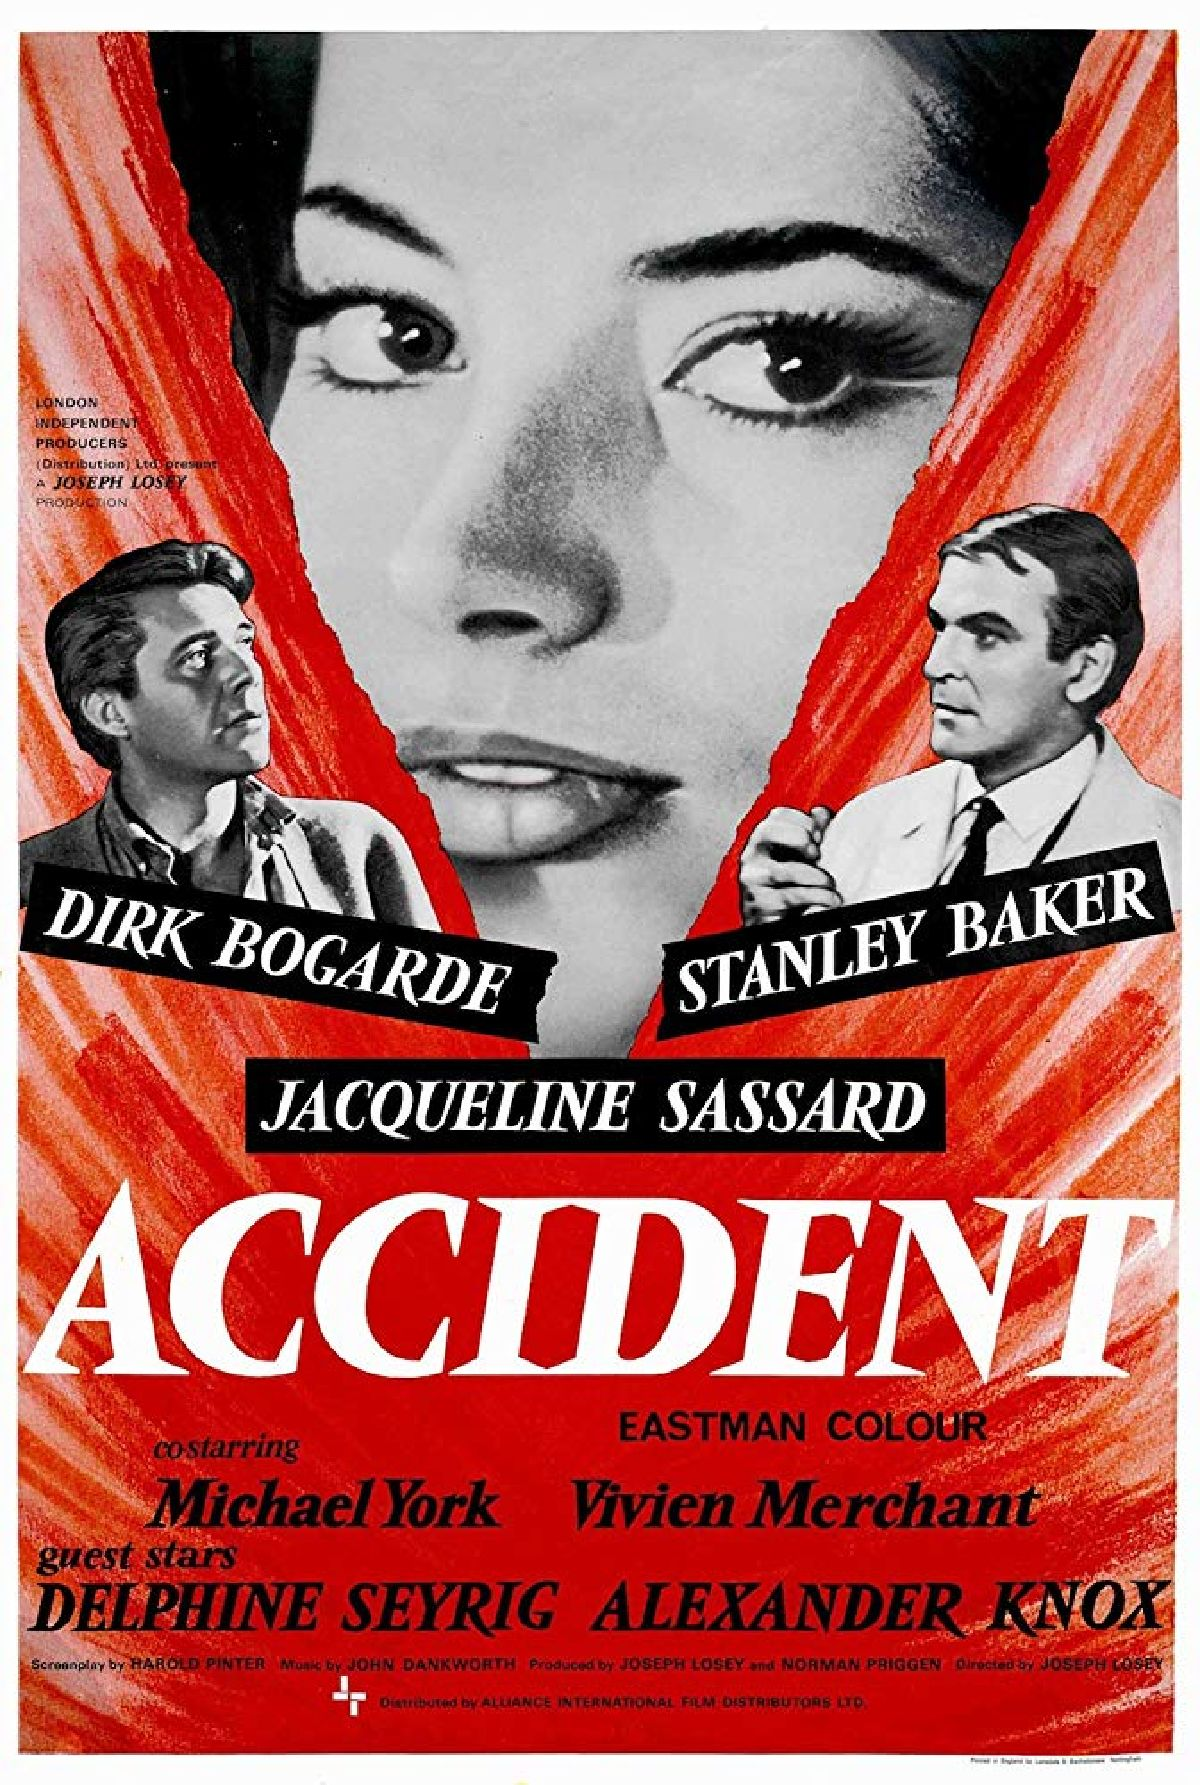 'Accident' movie poster